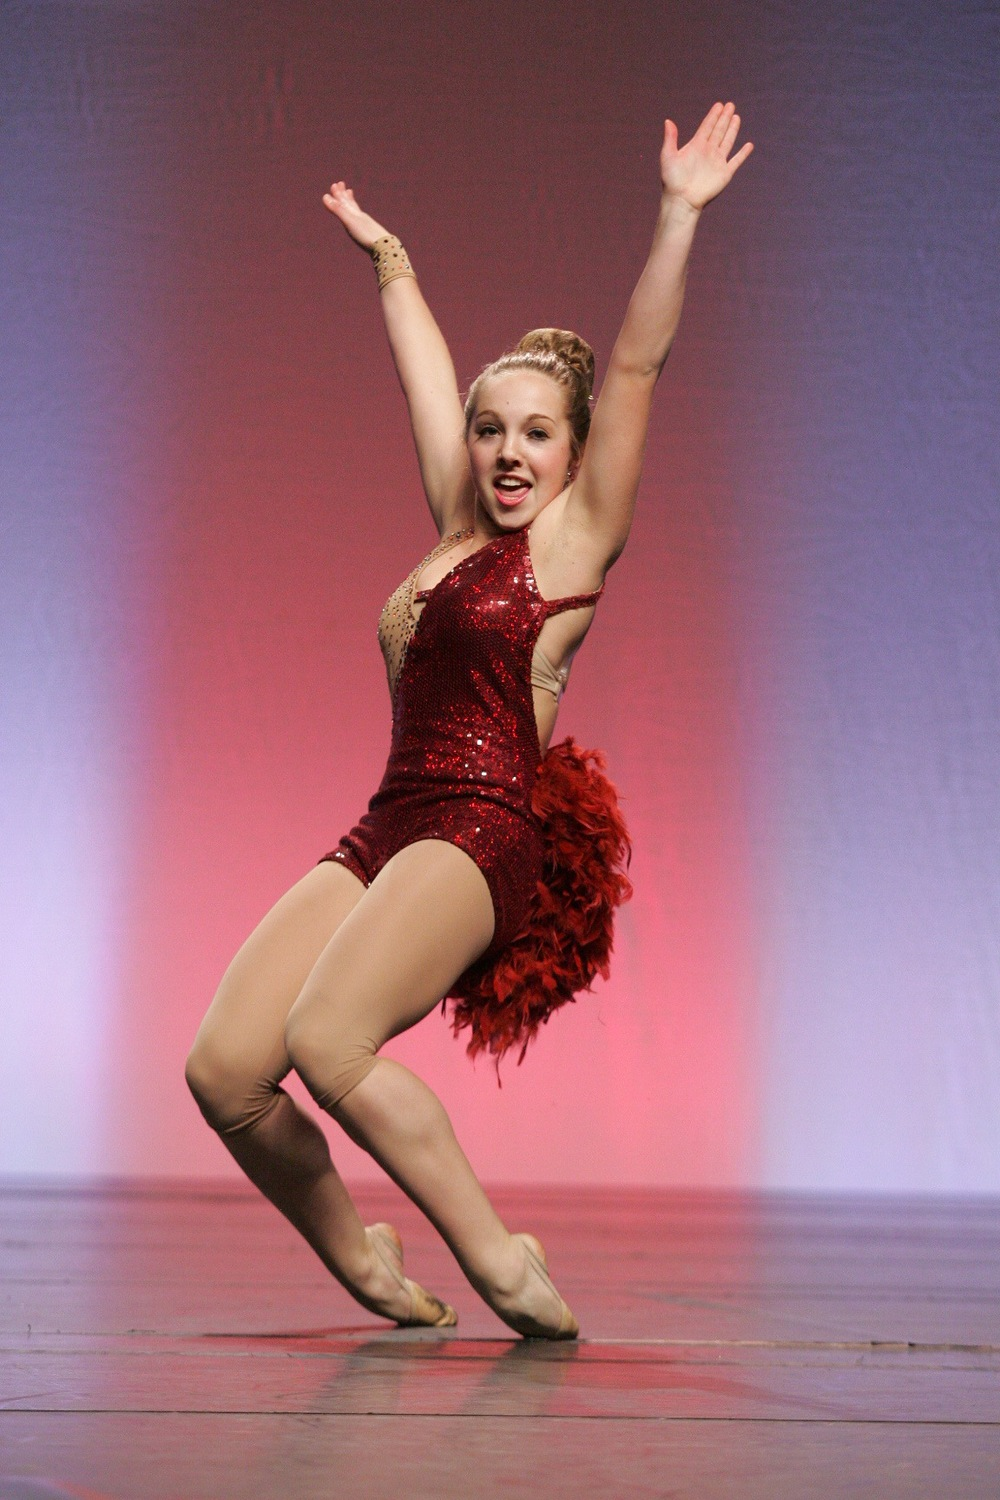 2013 - Alivia Fuhrman from Misty's Dance Unlimited